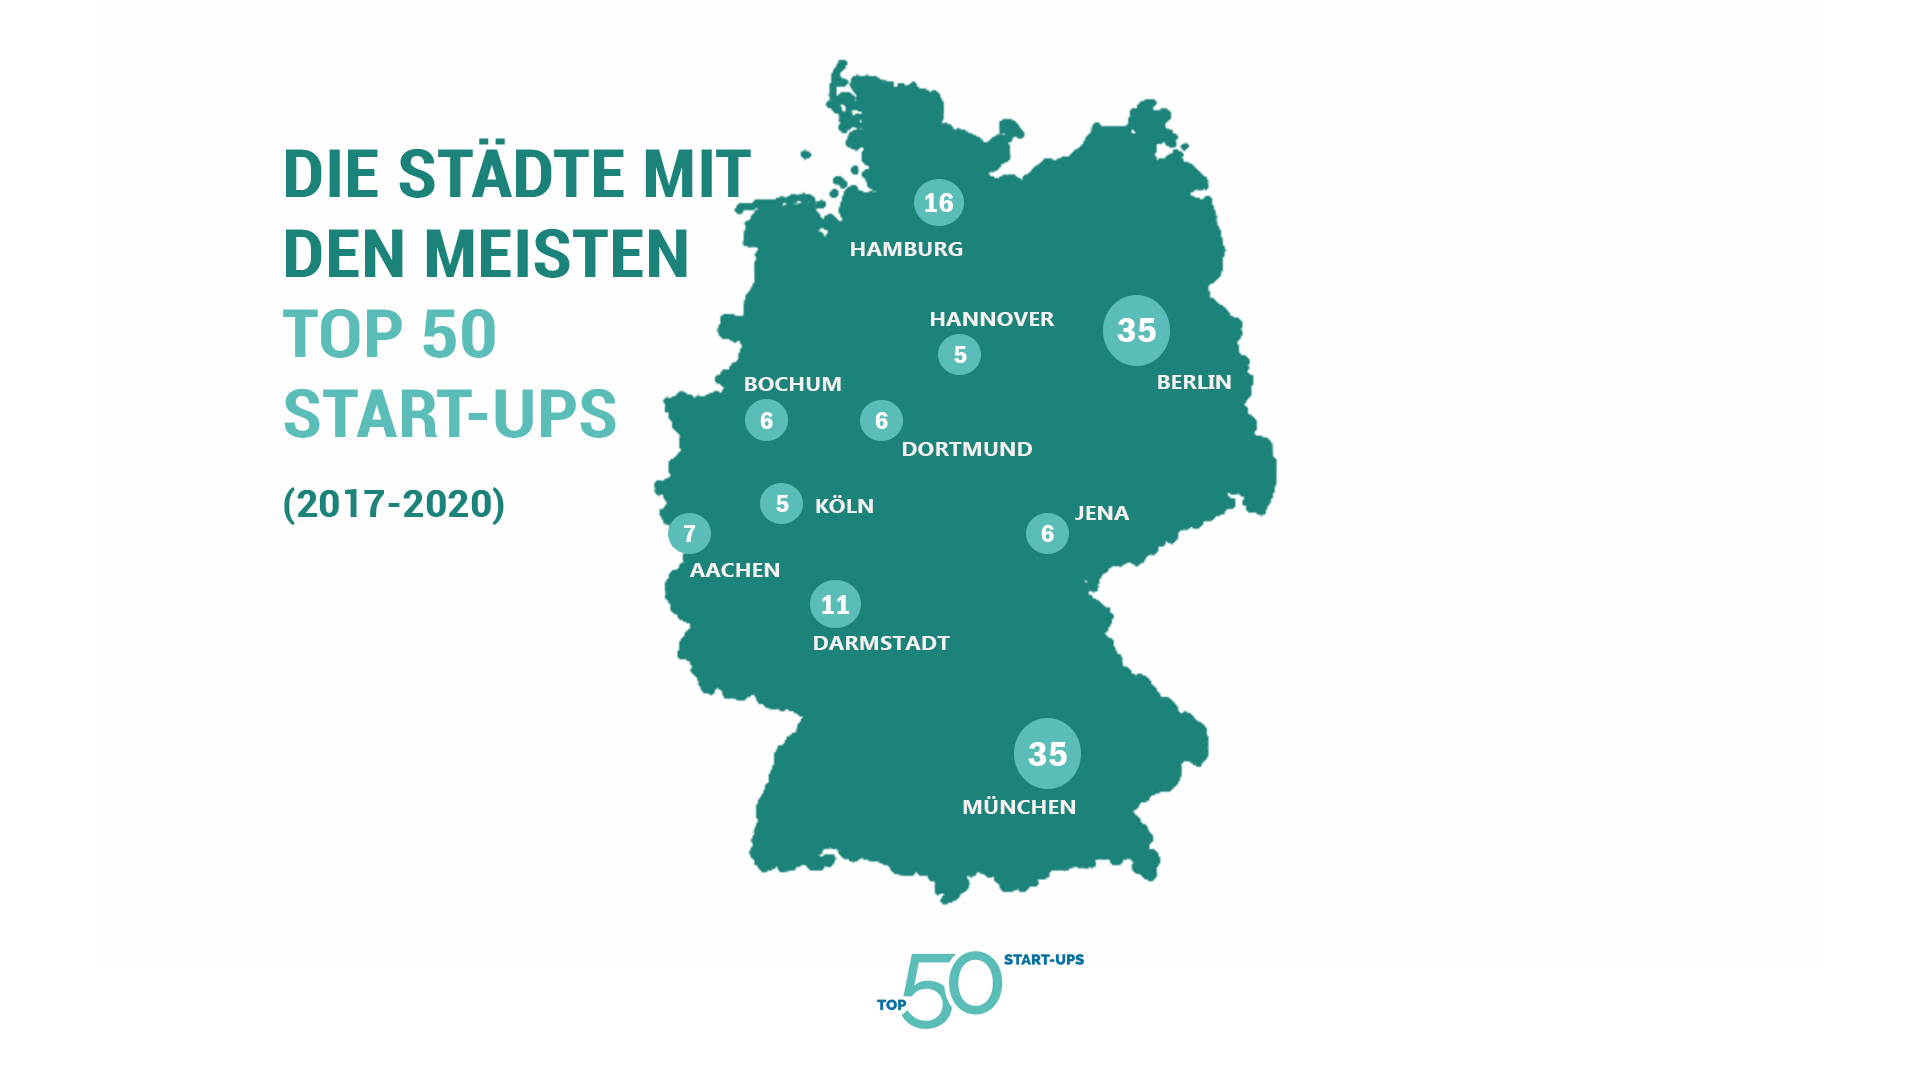 Ranking der Top 50 Start-ups-Zentren in Deutschland